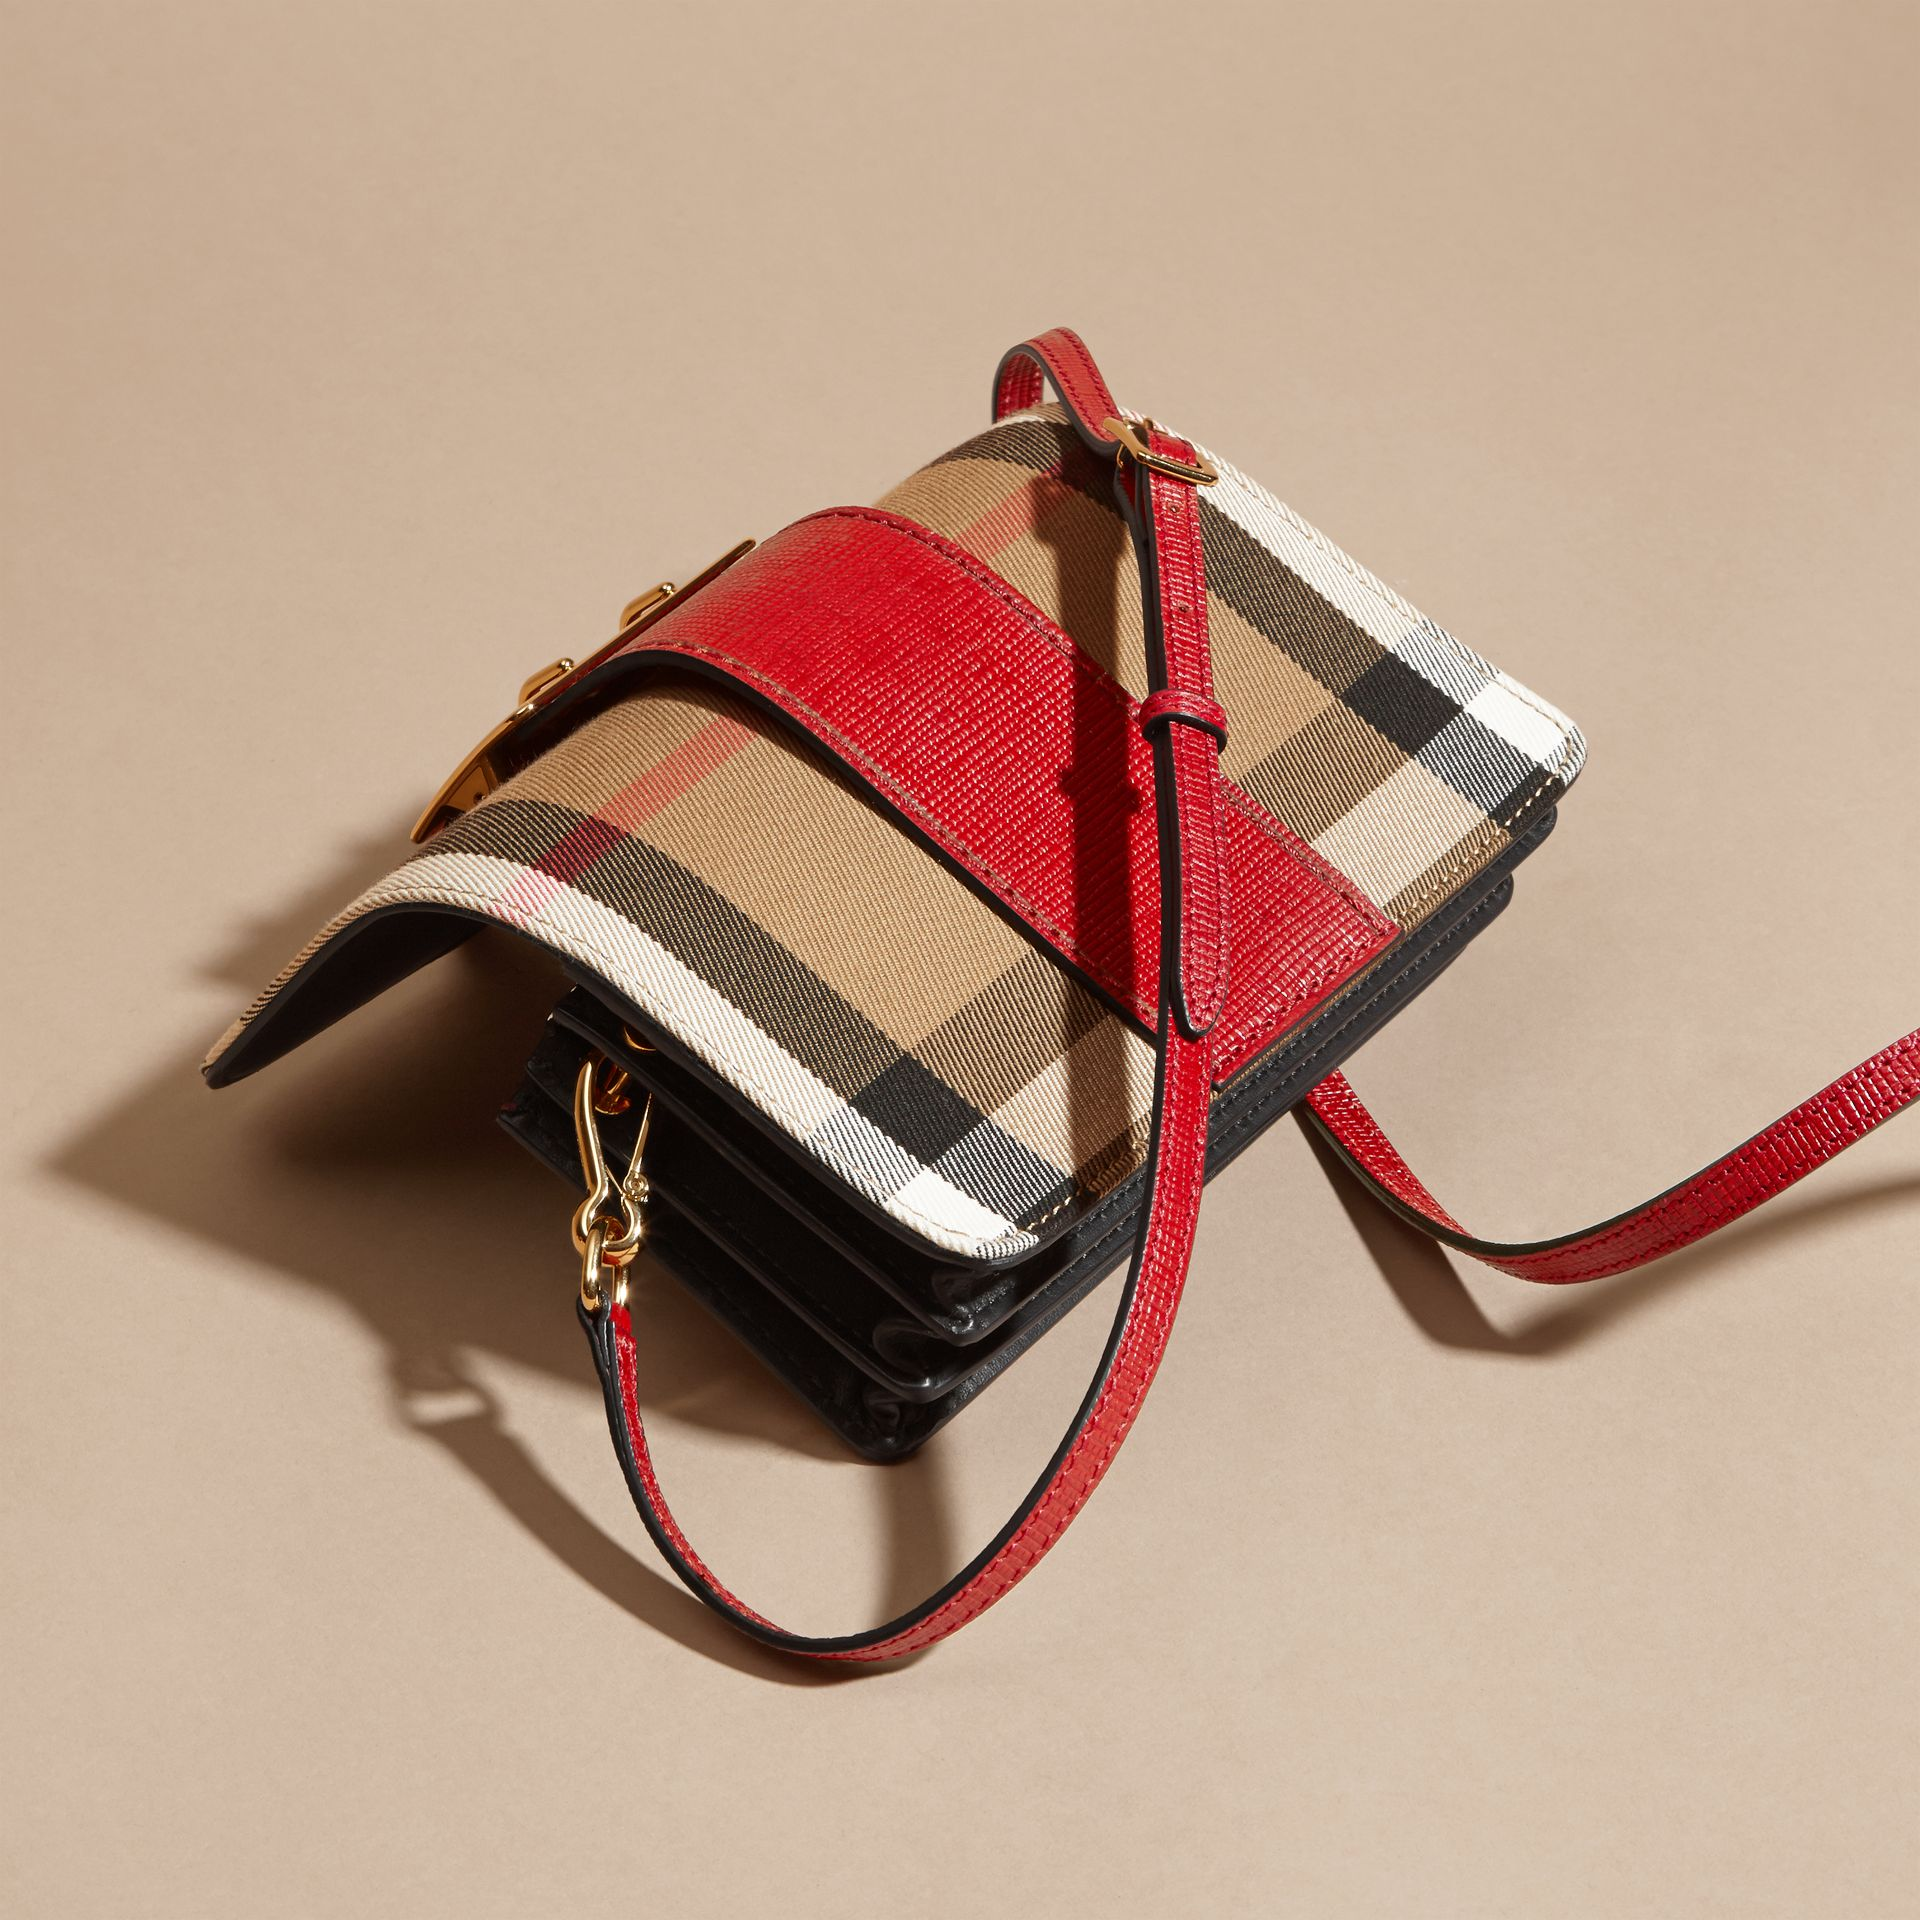 The Small Buckle Bag in House Check and Leather in Military Red/military Red - Women | Burberry United States - gallery image 4